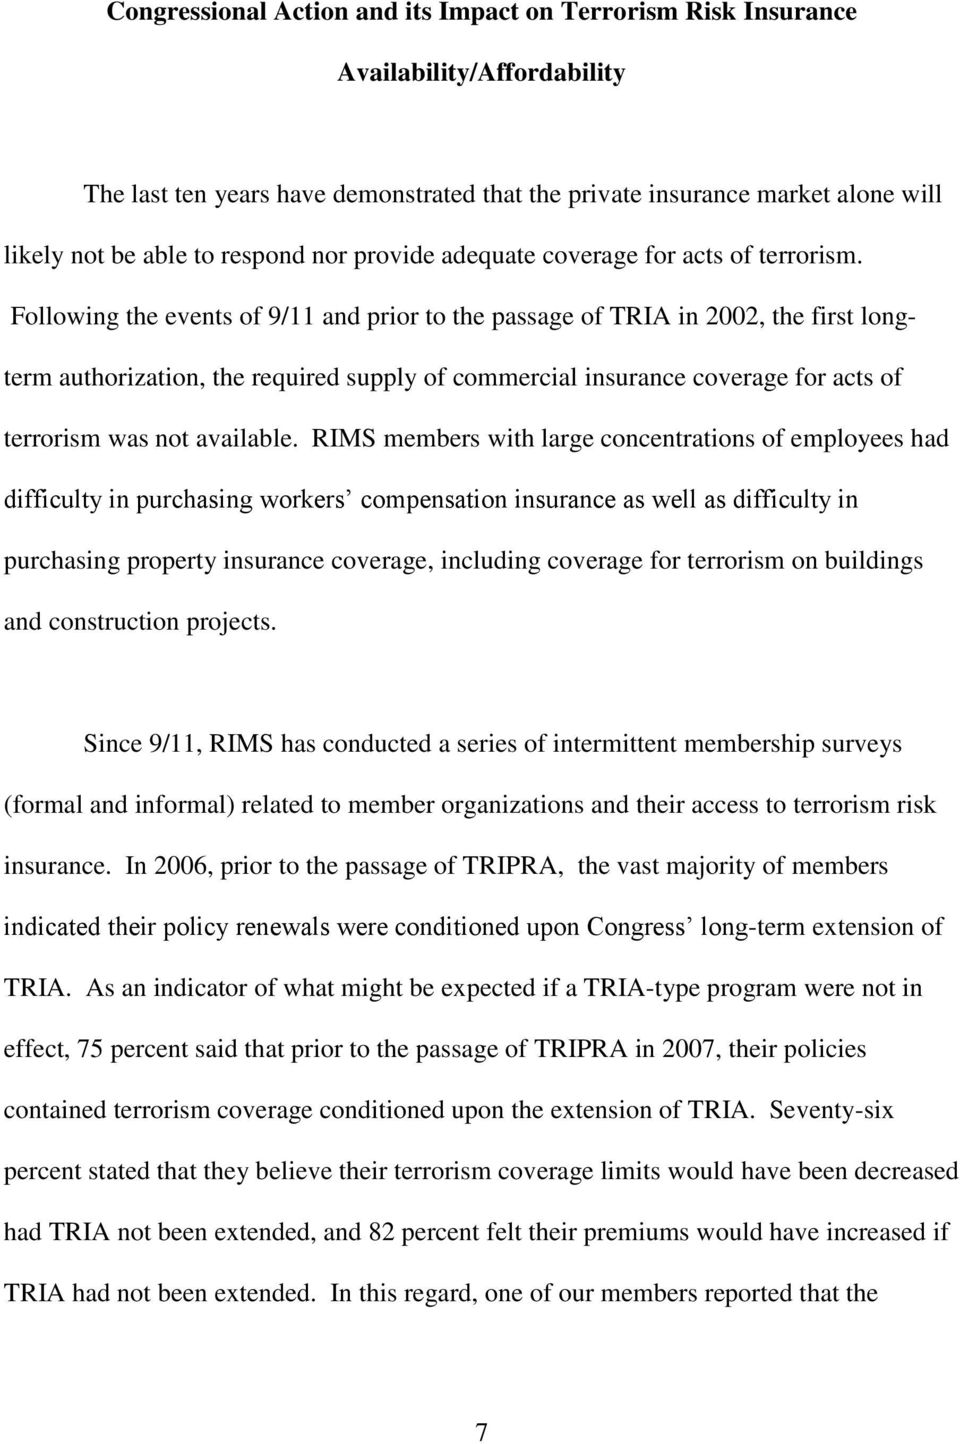 Following the events of 9/11 and prior to the passage of TRIA in 2002, the first longterm authorization, the required supply of commercial insurance coverage for acts of terrorism was not available.